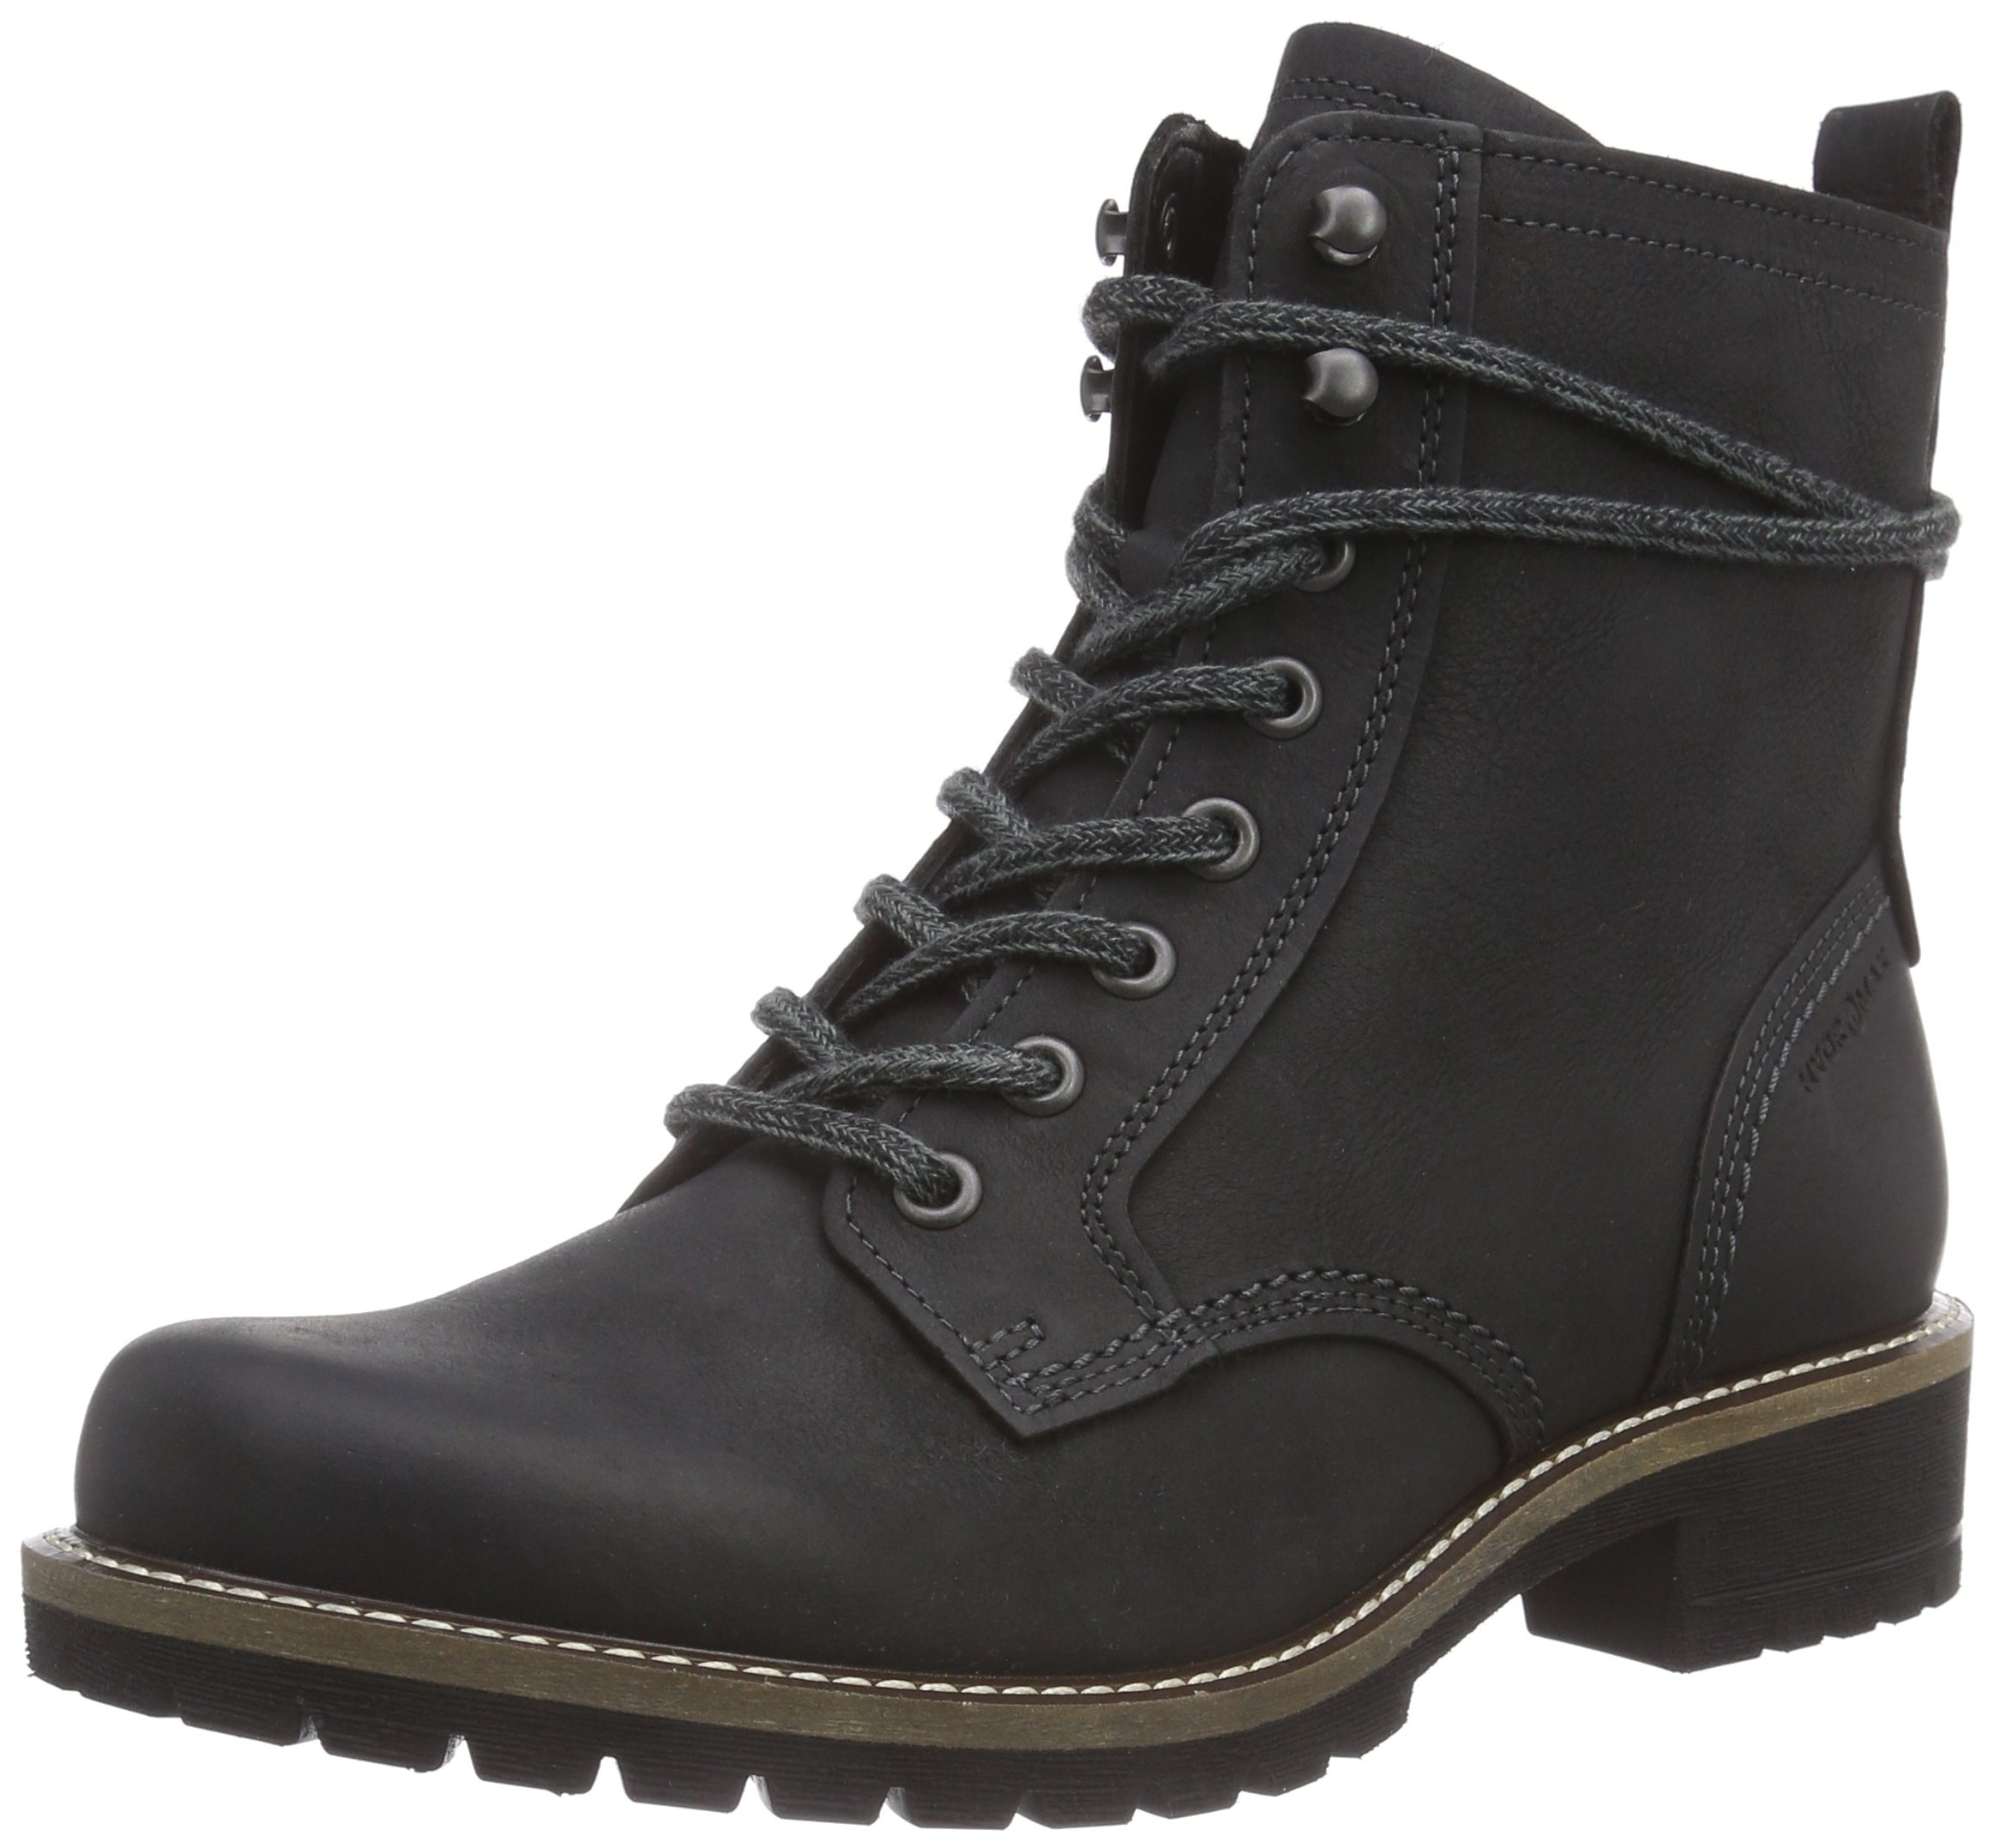 Ecco Footwear Womens Elaine Boot, Black, 37 EU/6-6.5 M US